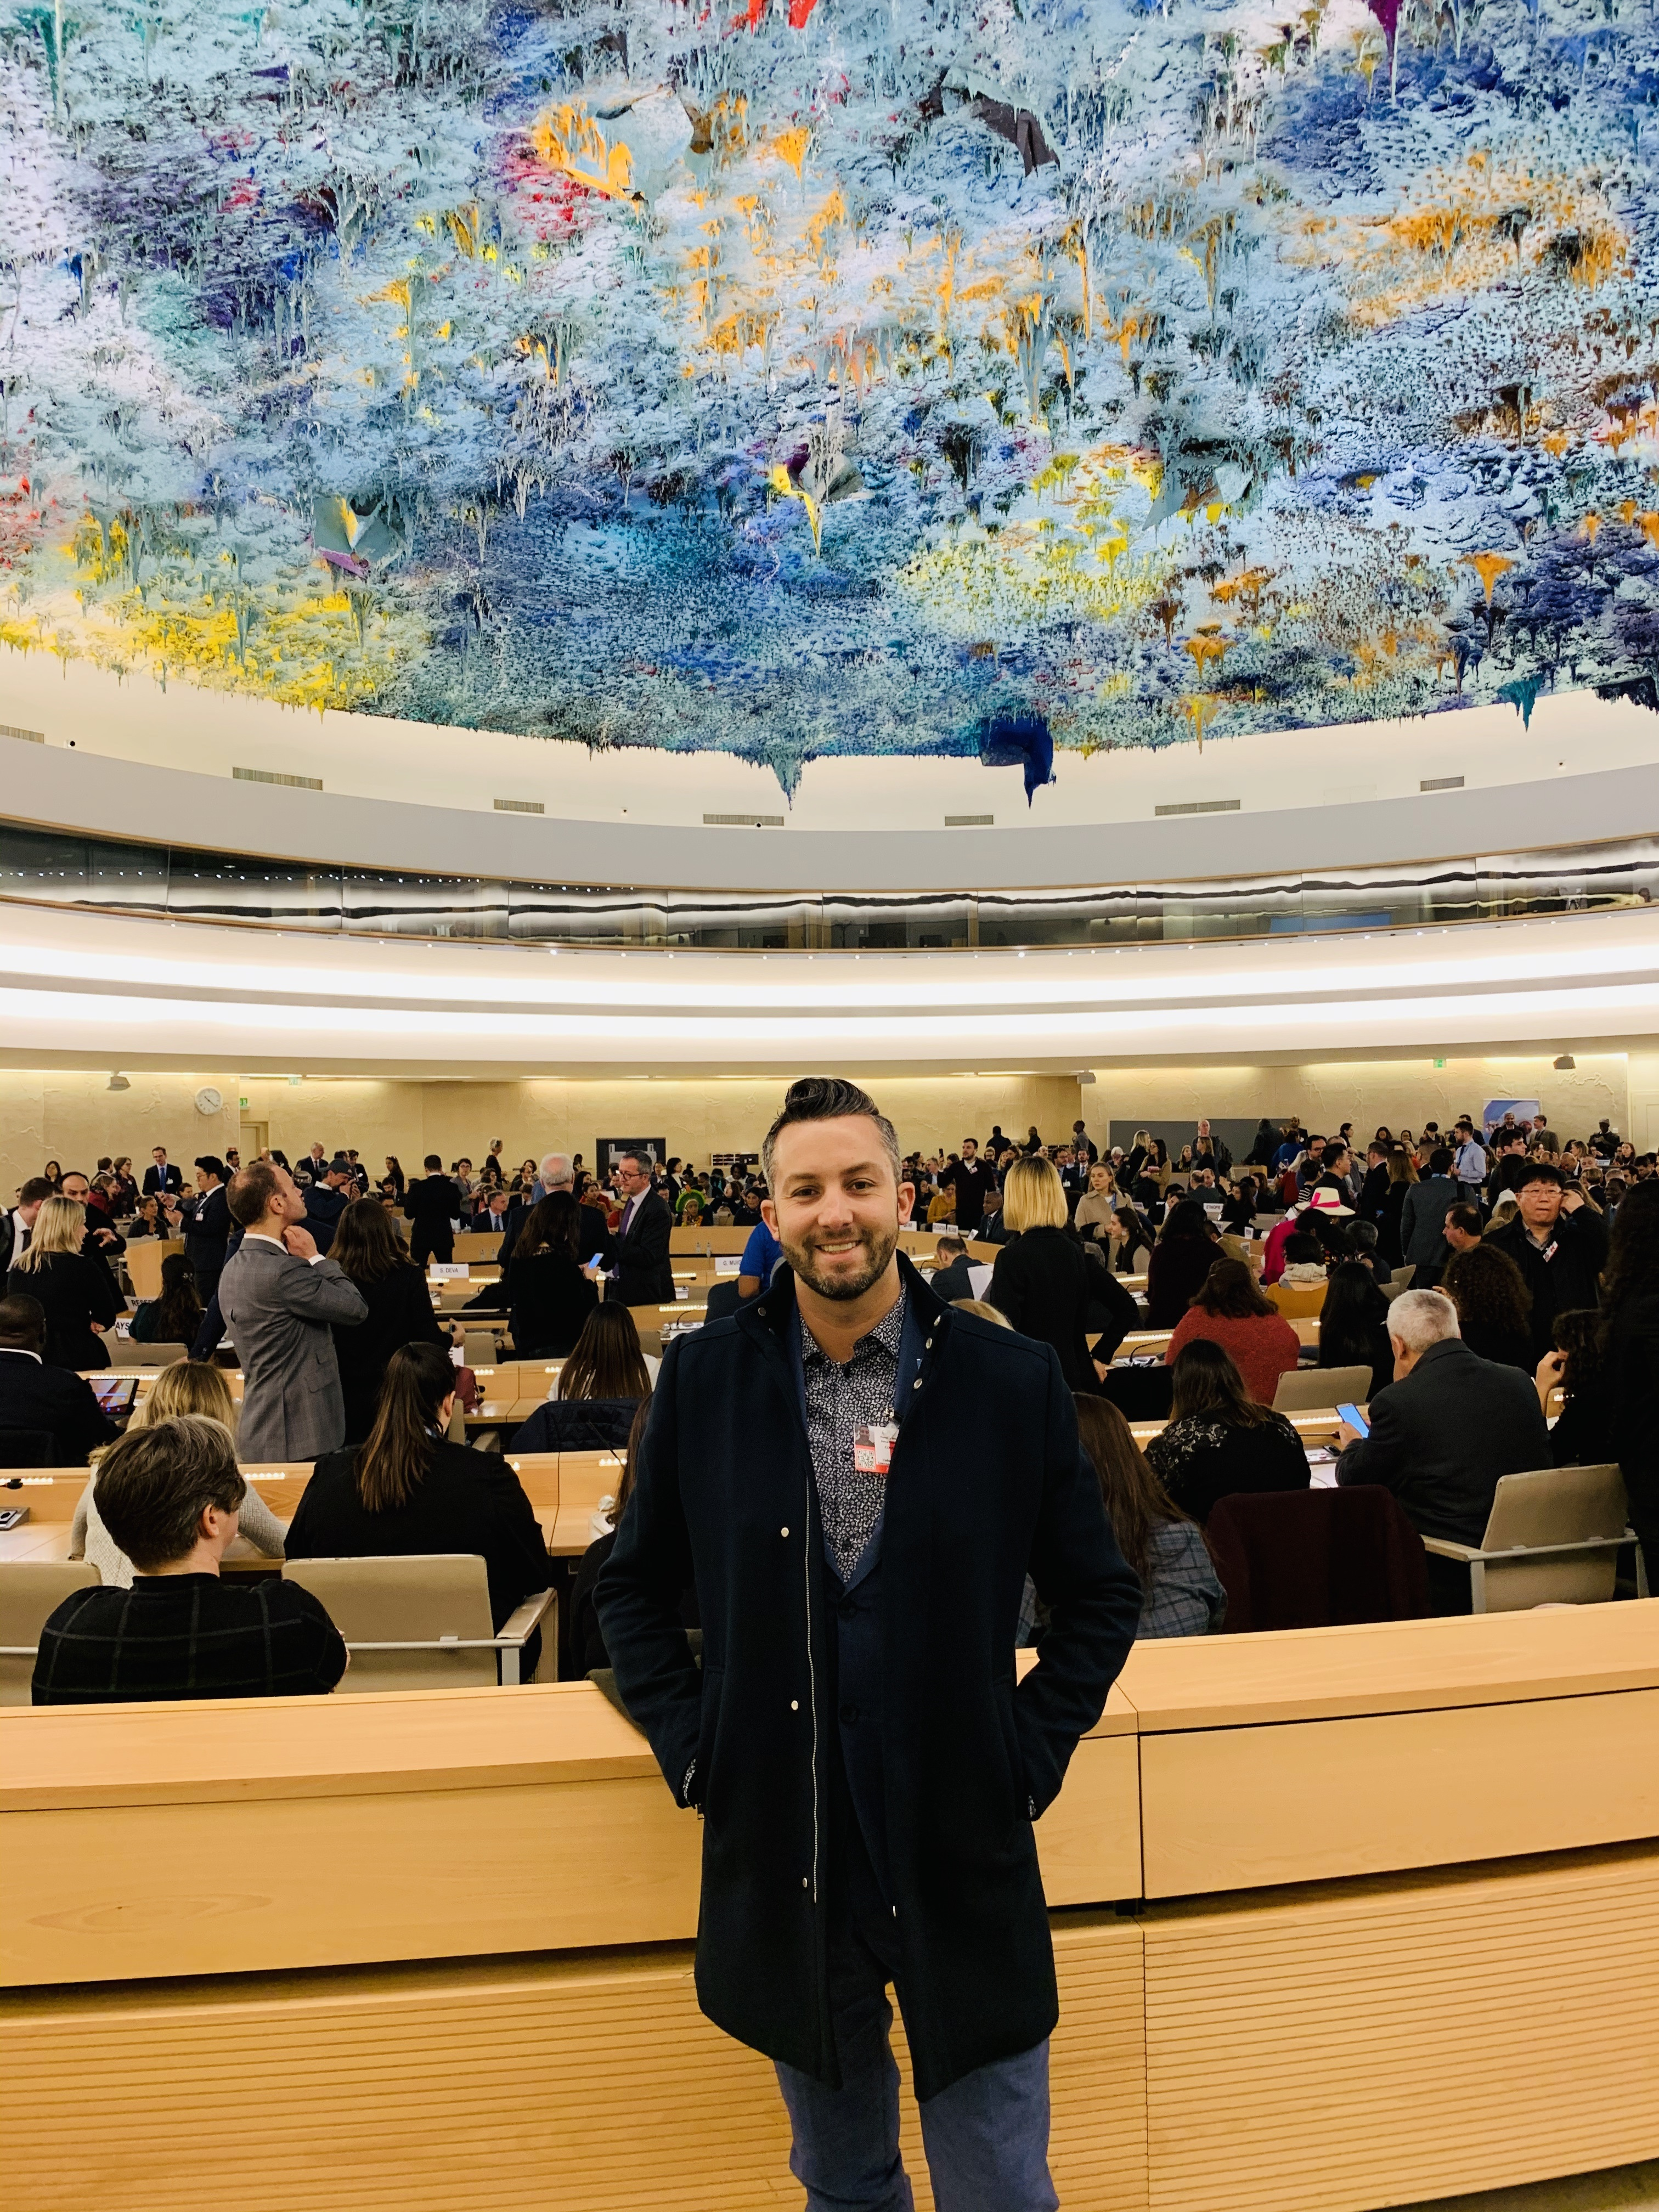 Bradford Conroy at the UN Human Rights Council in Geneva, Switzerland.